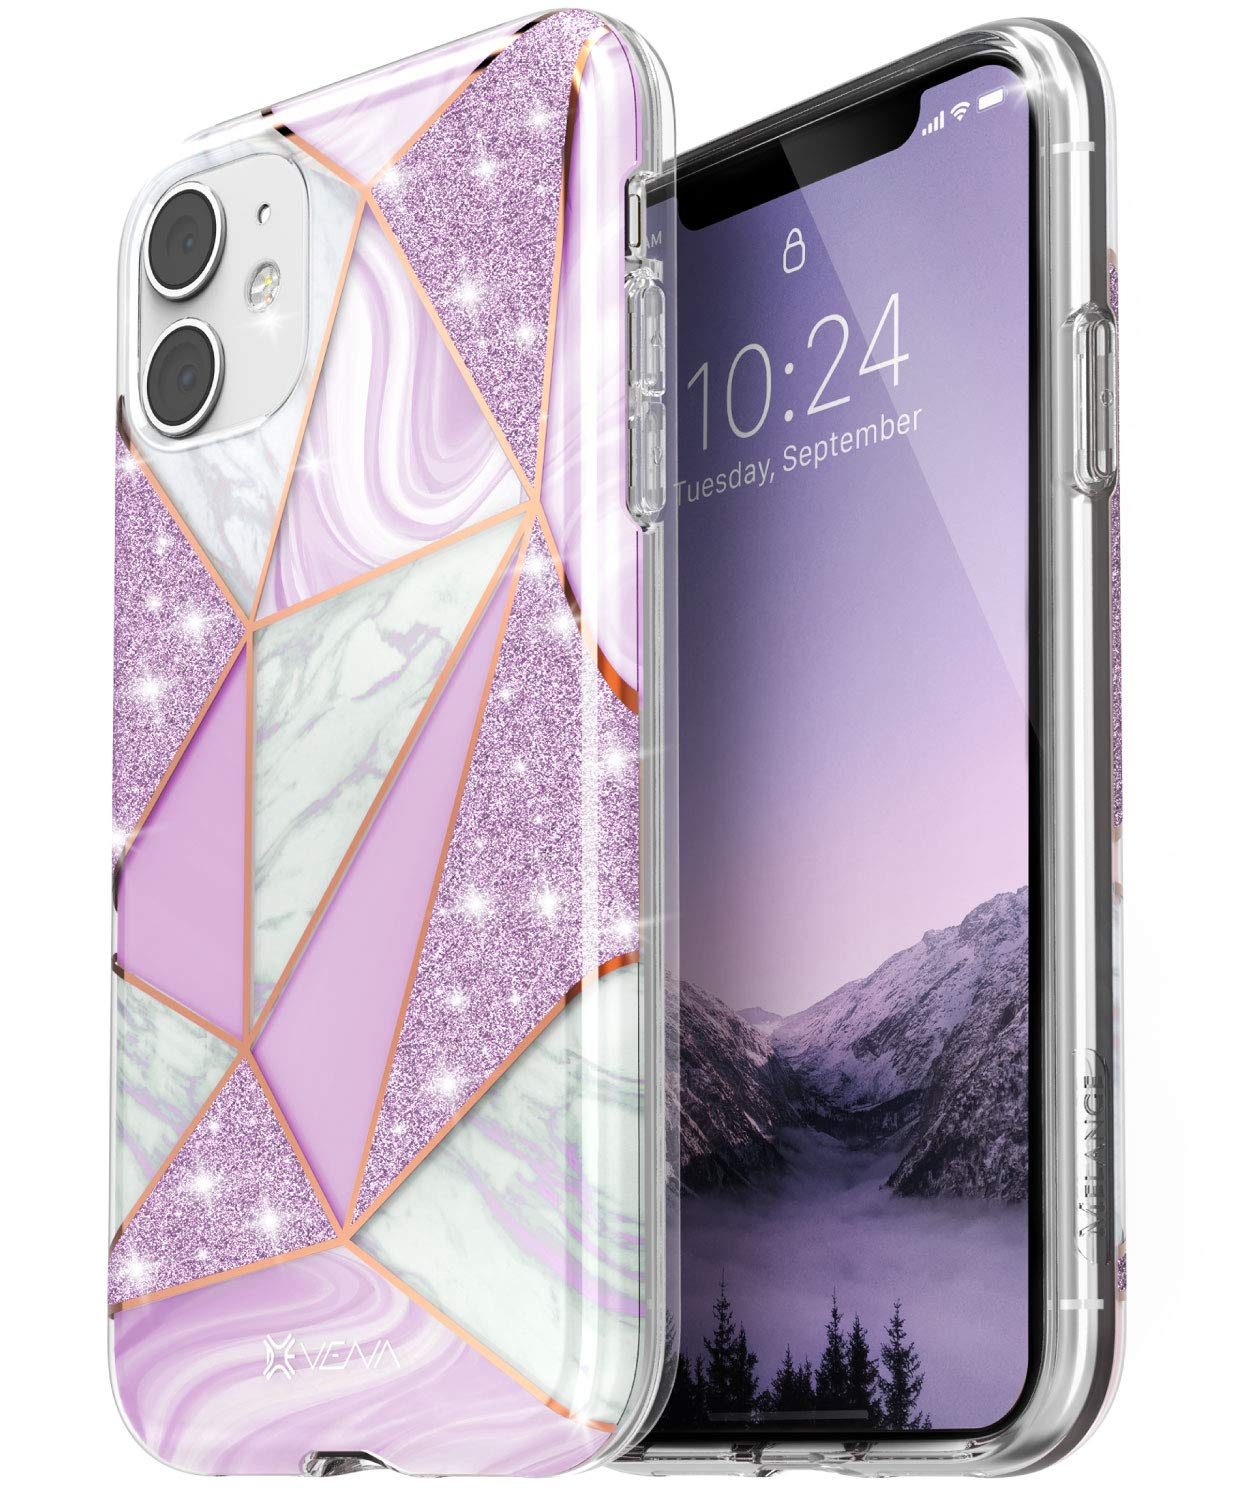 Vena iPhone 11 Marble Glitter Case, Melange Glitter Marble Bumper Protective Case, Designed for iPhone 11 (6.1 inches) - Marble Purple